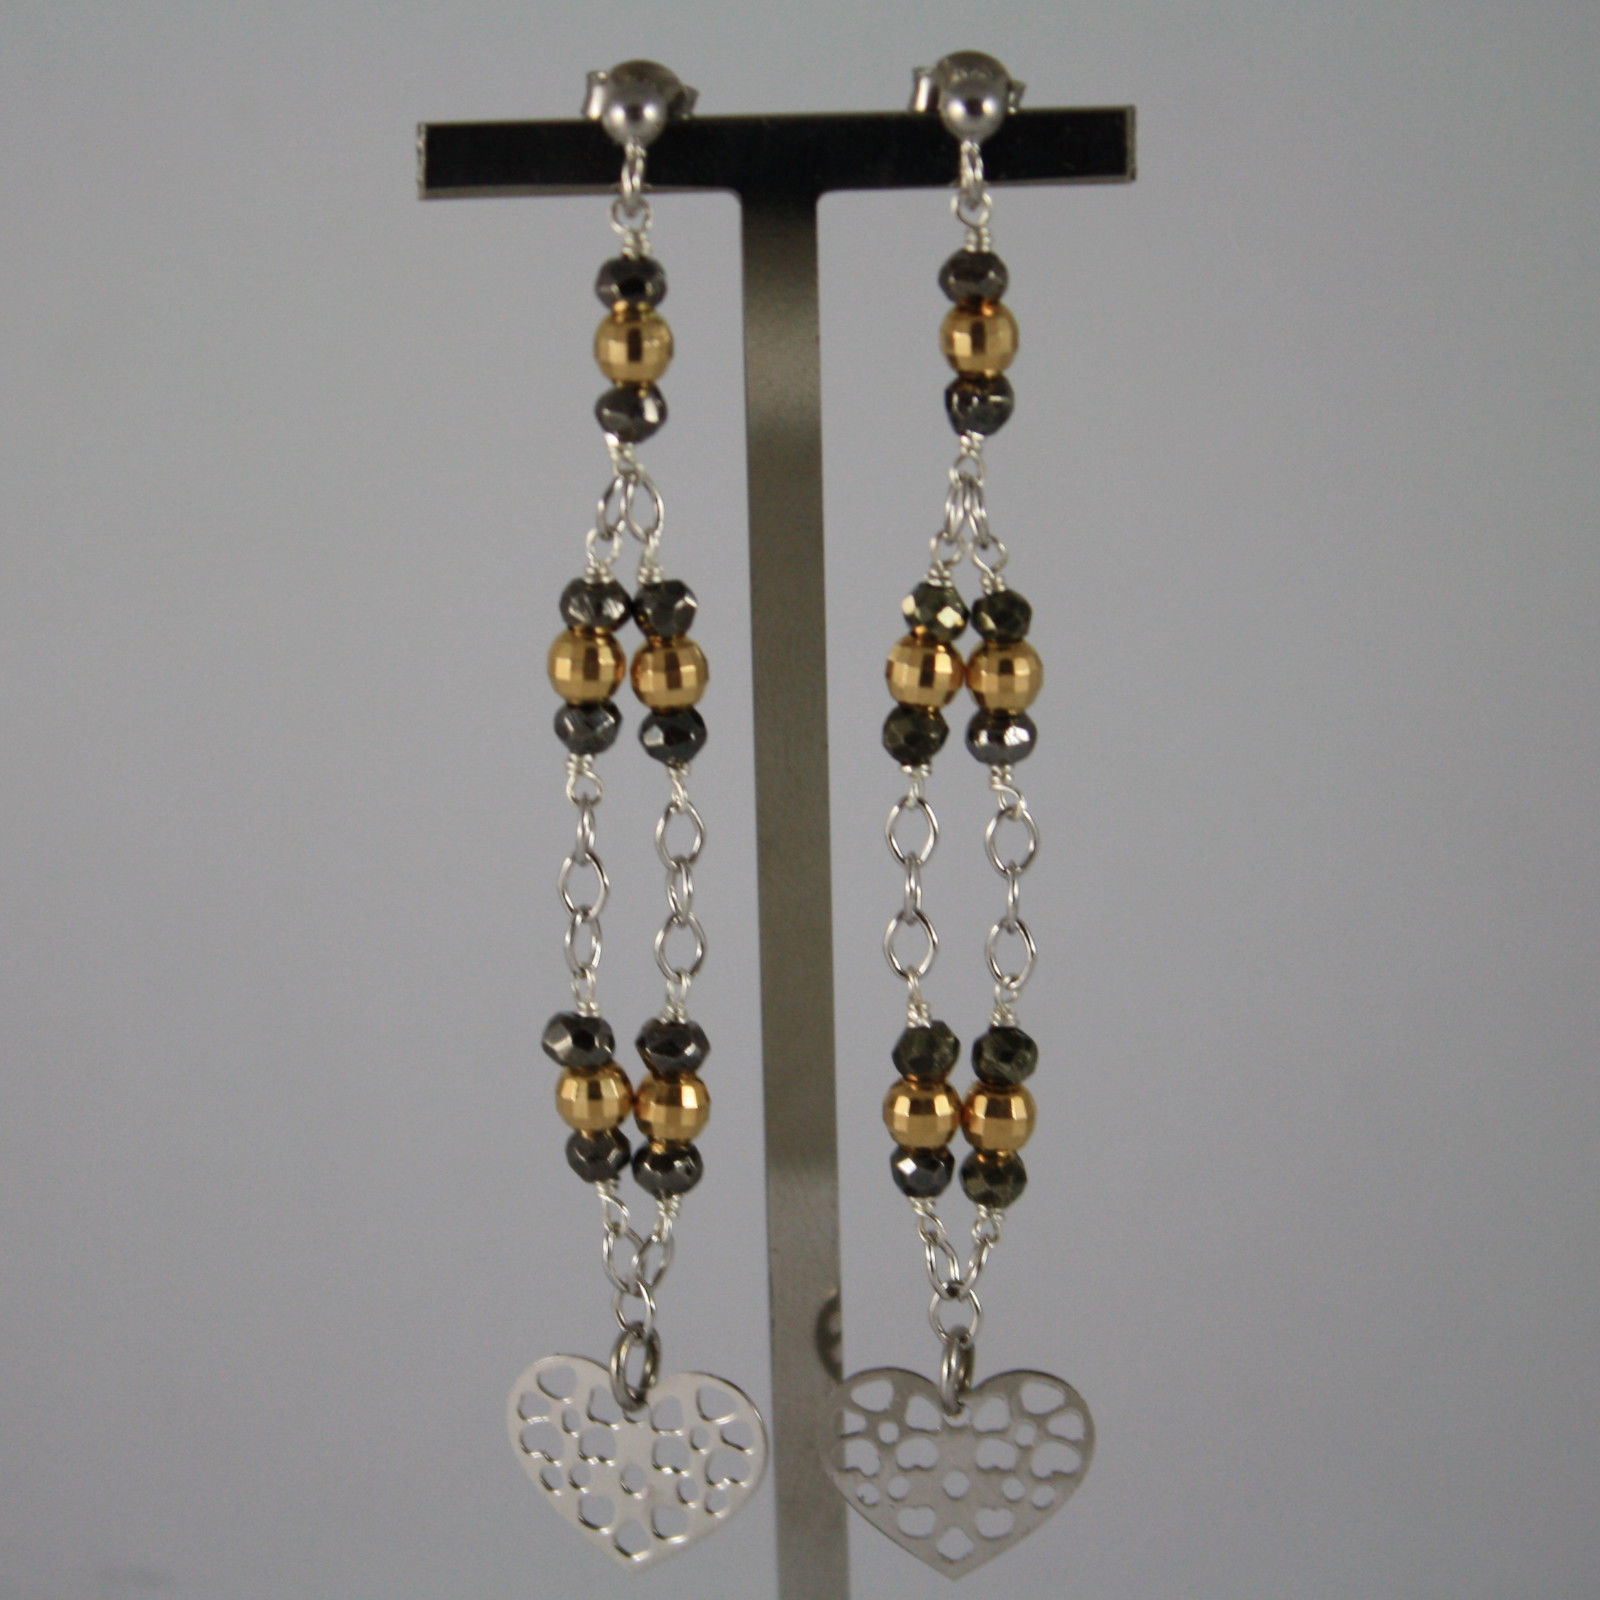 .925 RHODIUM SILVER EARRINGS WITH GOLDEN AND BURNISHED SPHERES AND HEART